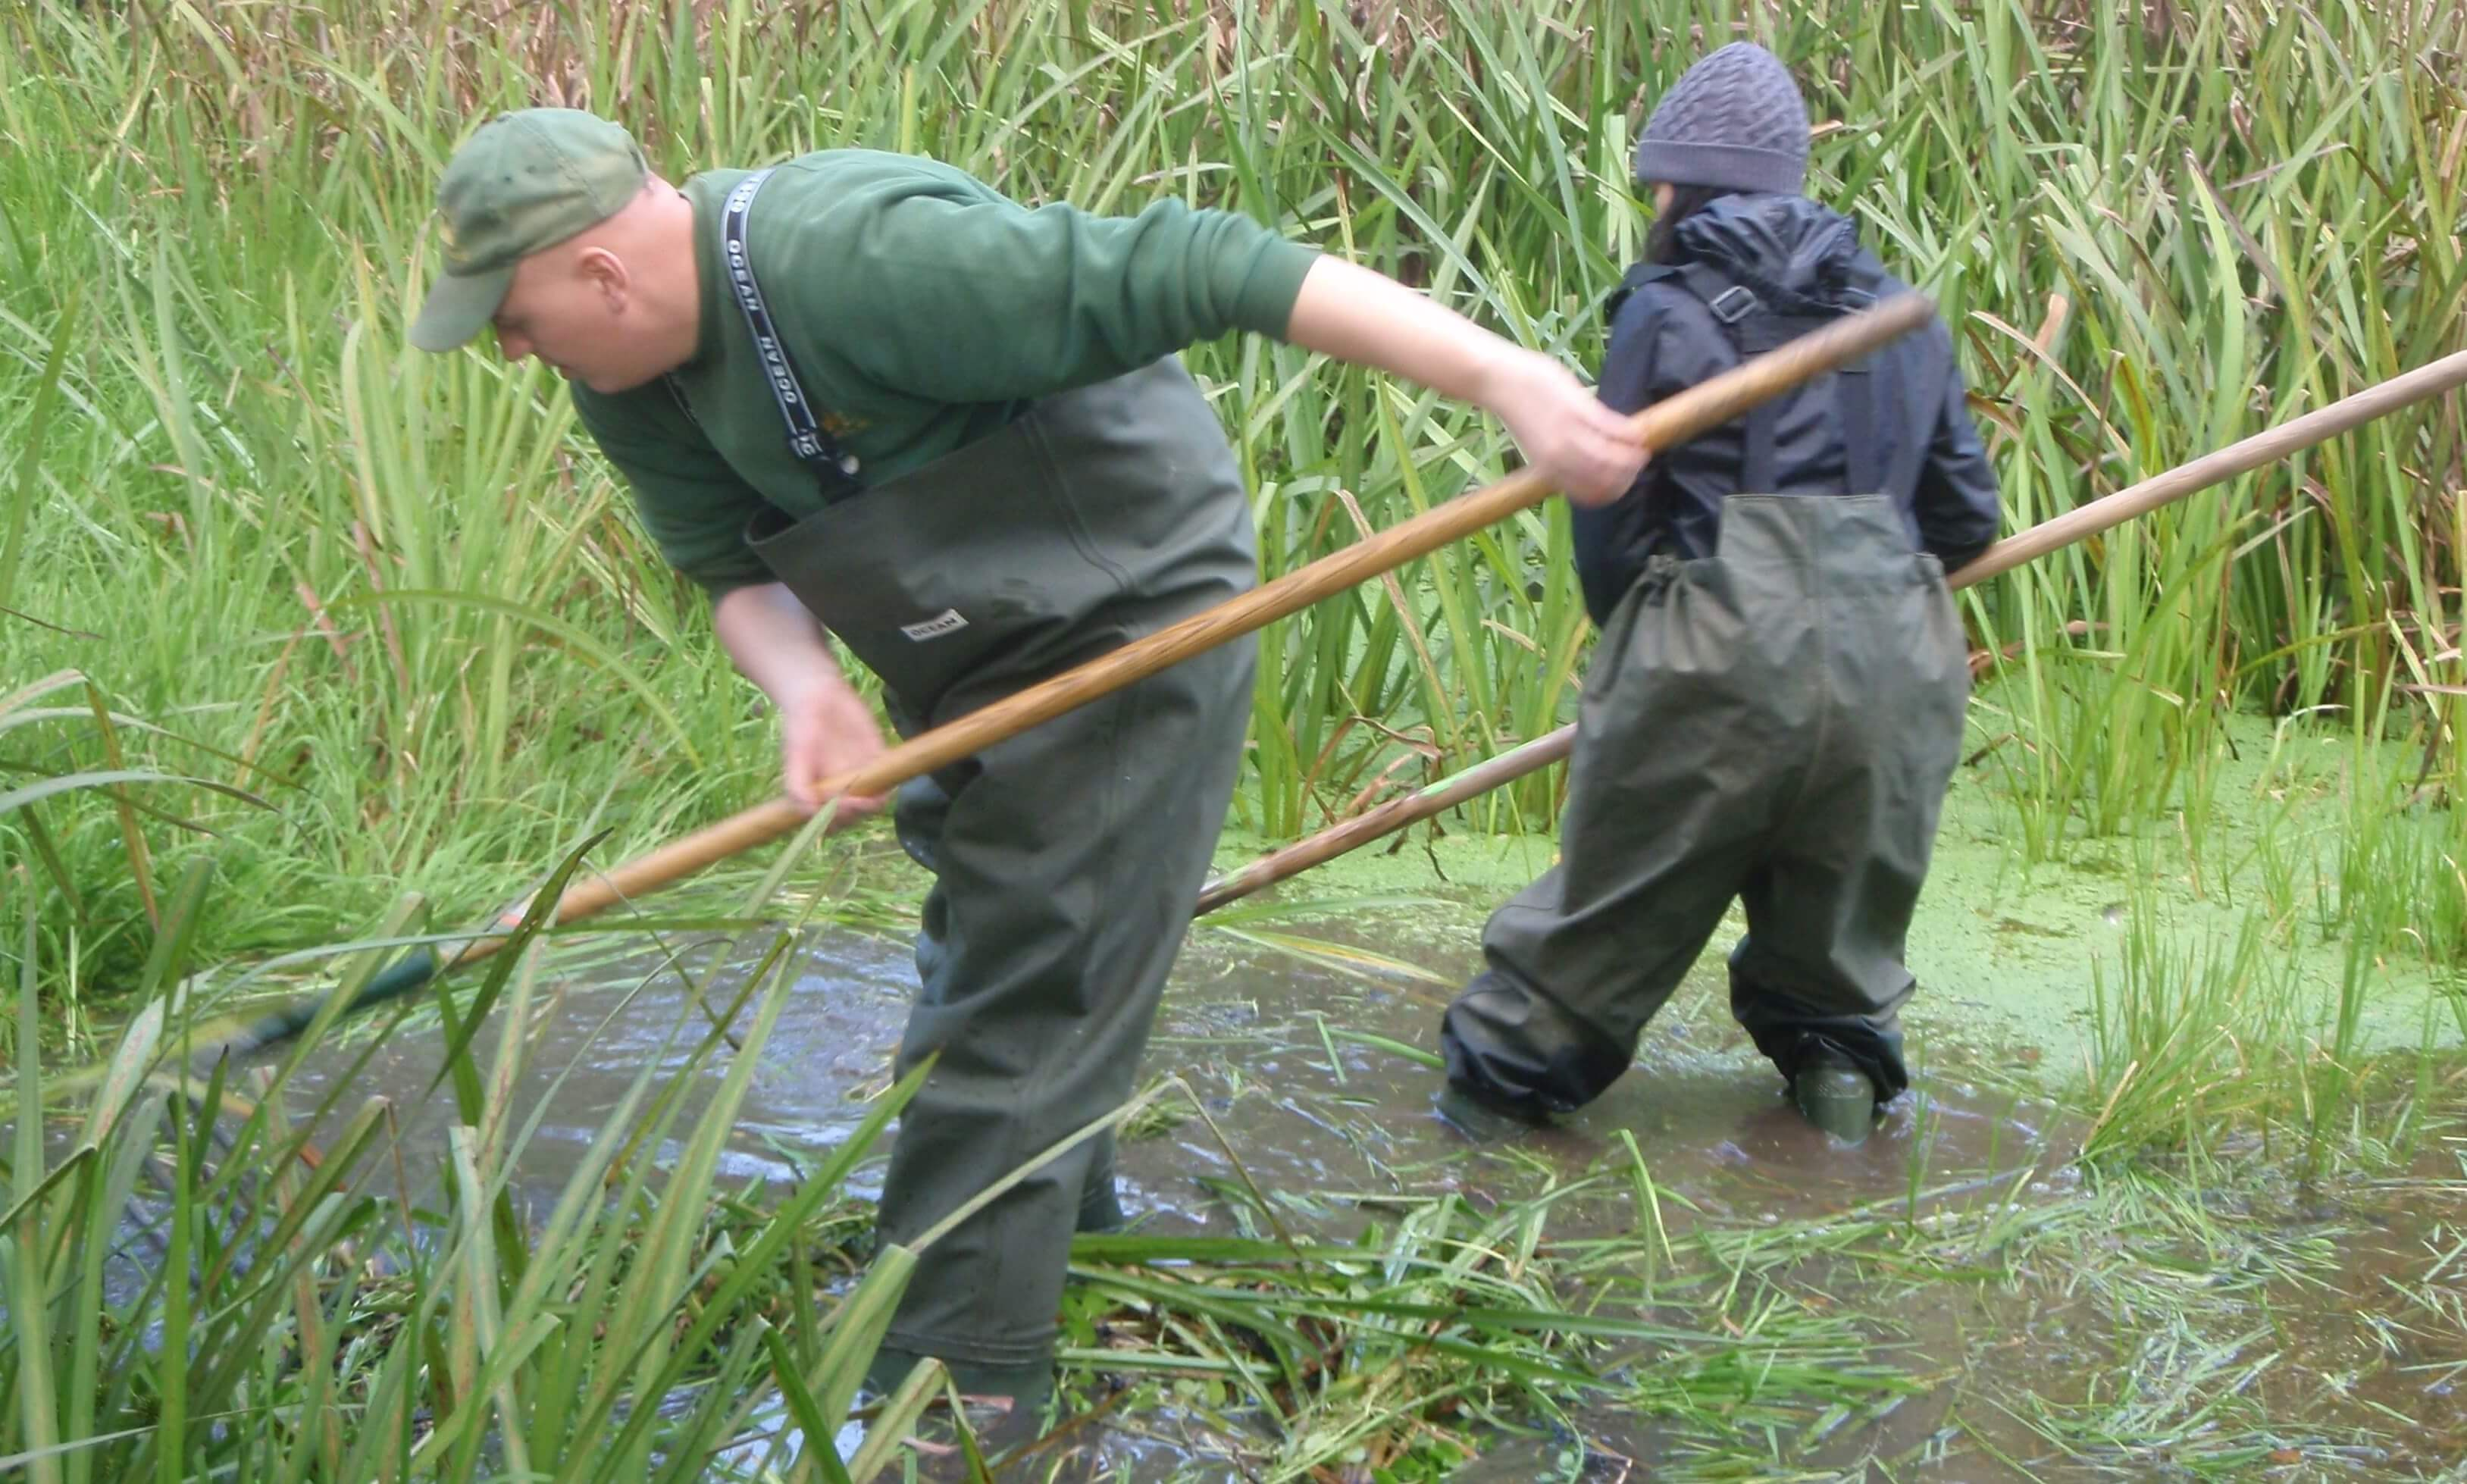 Volunteers with Park Ranger Team working at marefield Pond